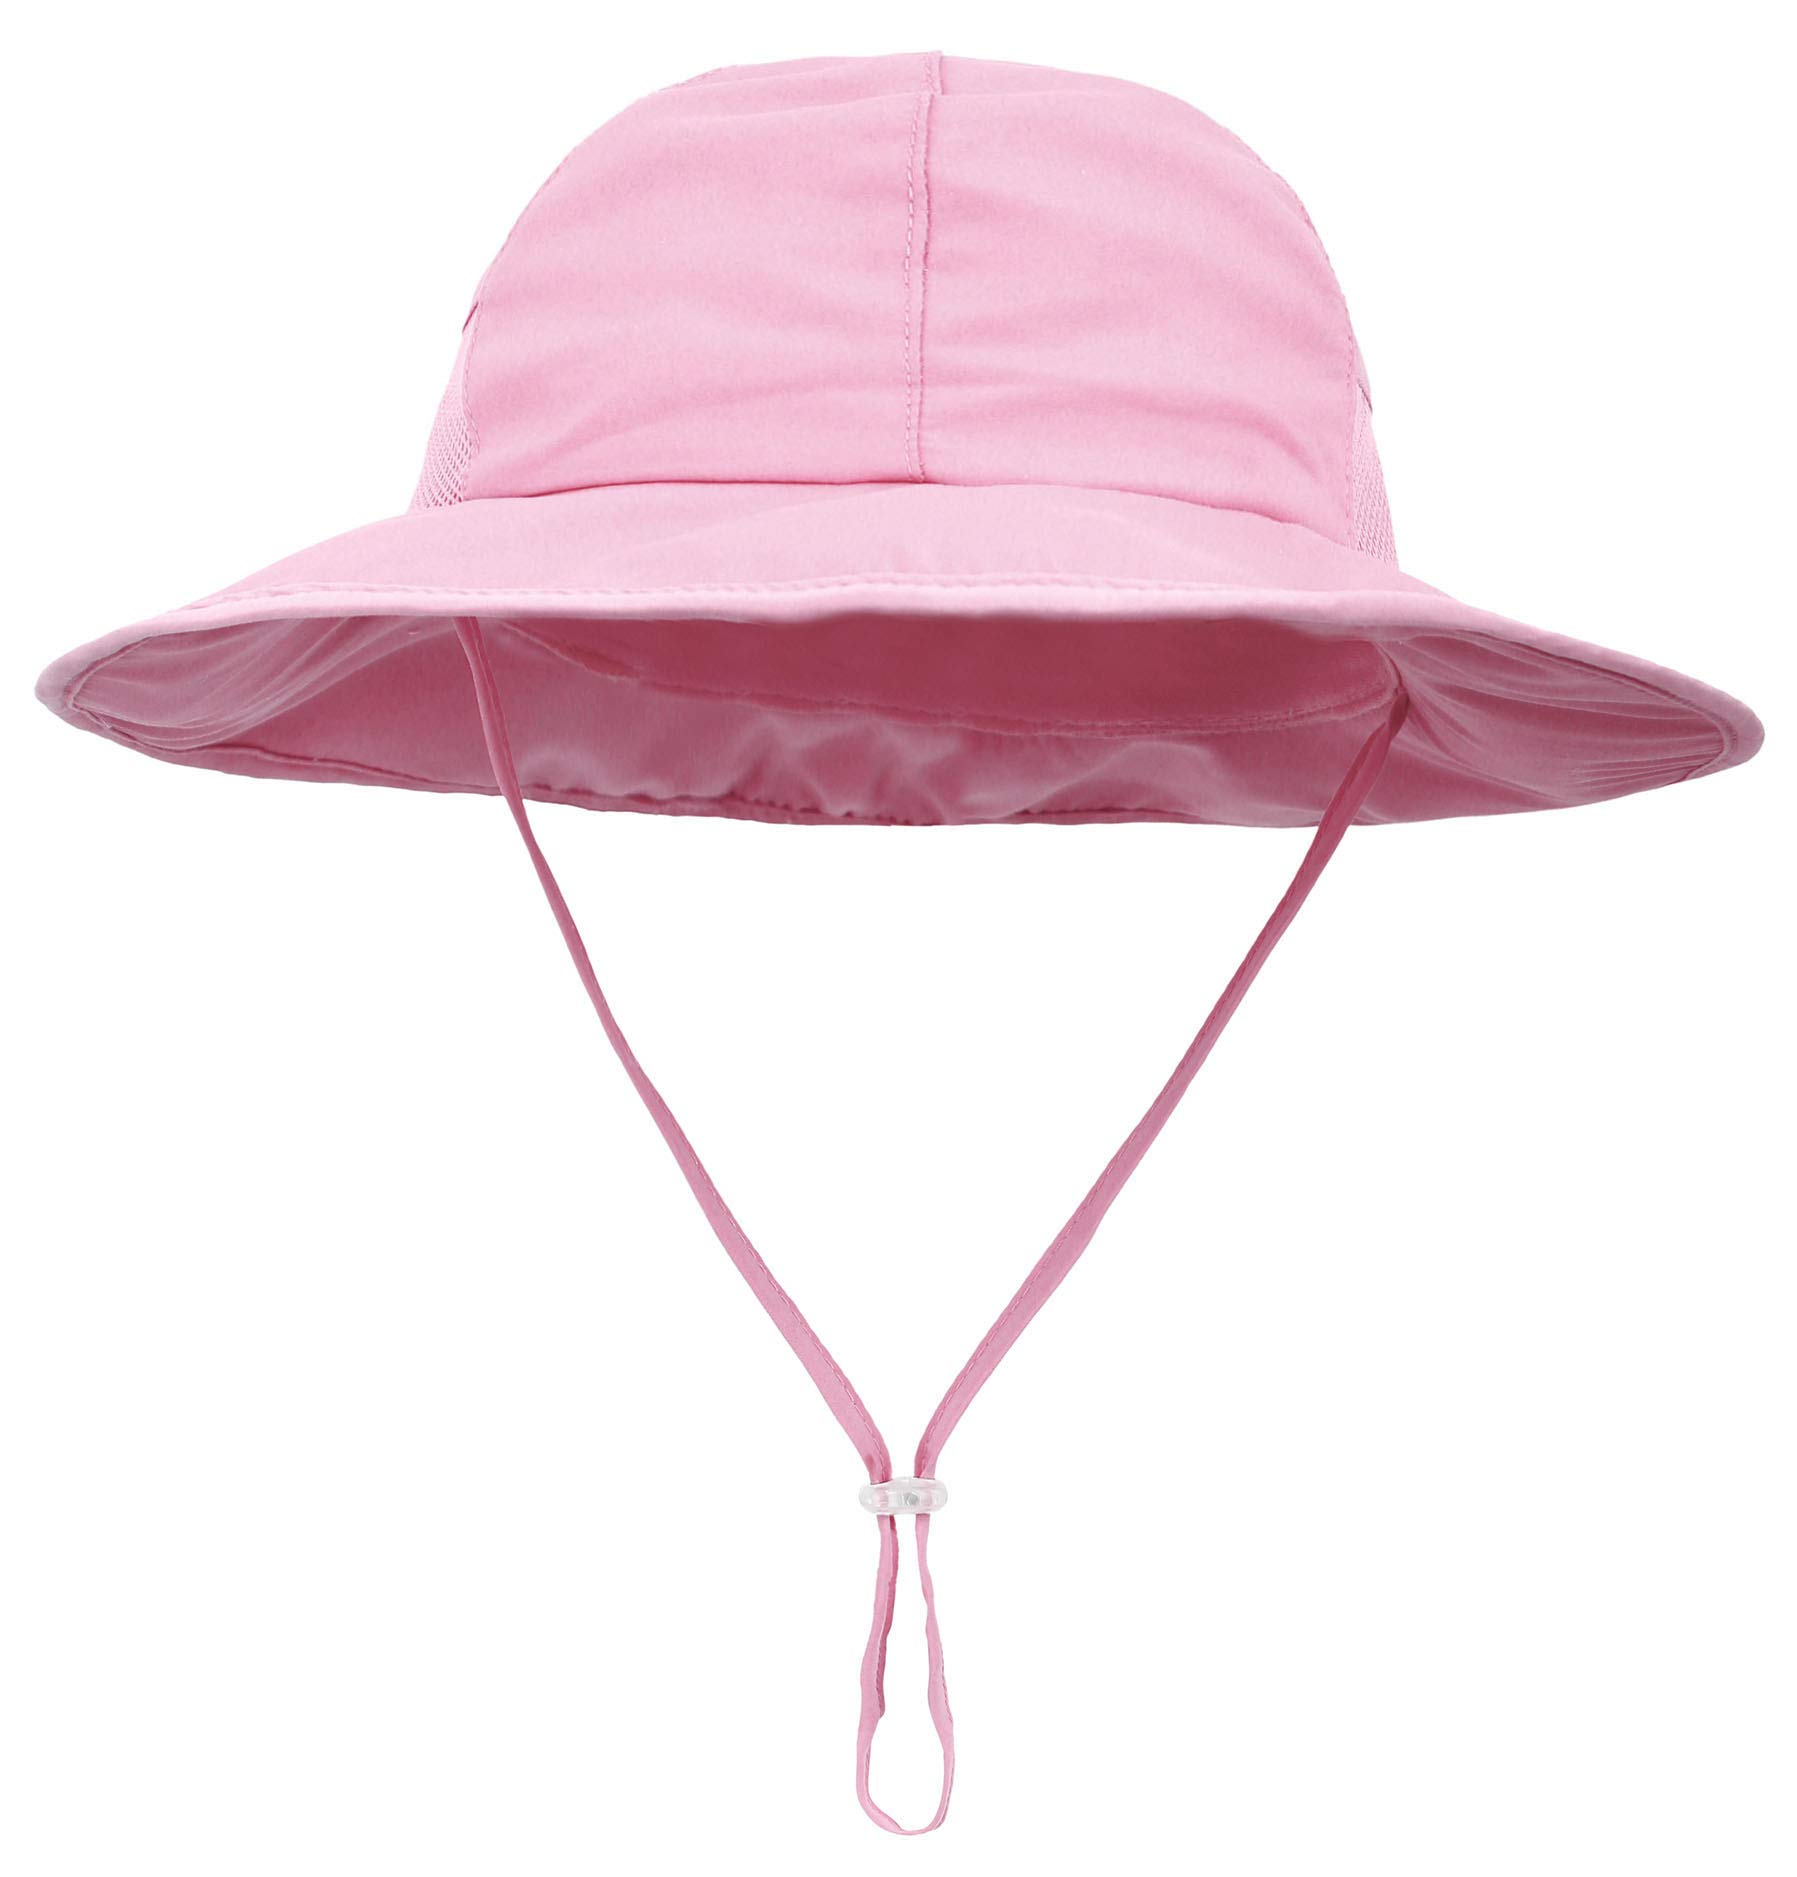 SimpliKids Girls Kids Sun Hat with UV Protection Wide Brim Bucket Hat Pink by SimpliKids